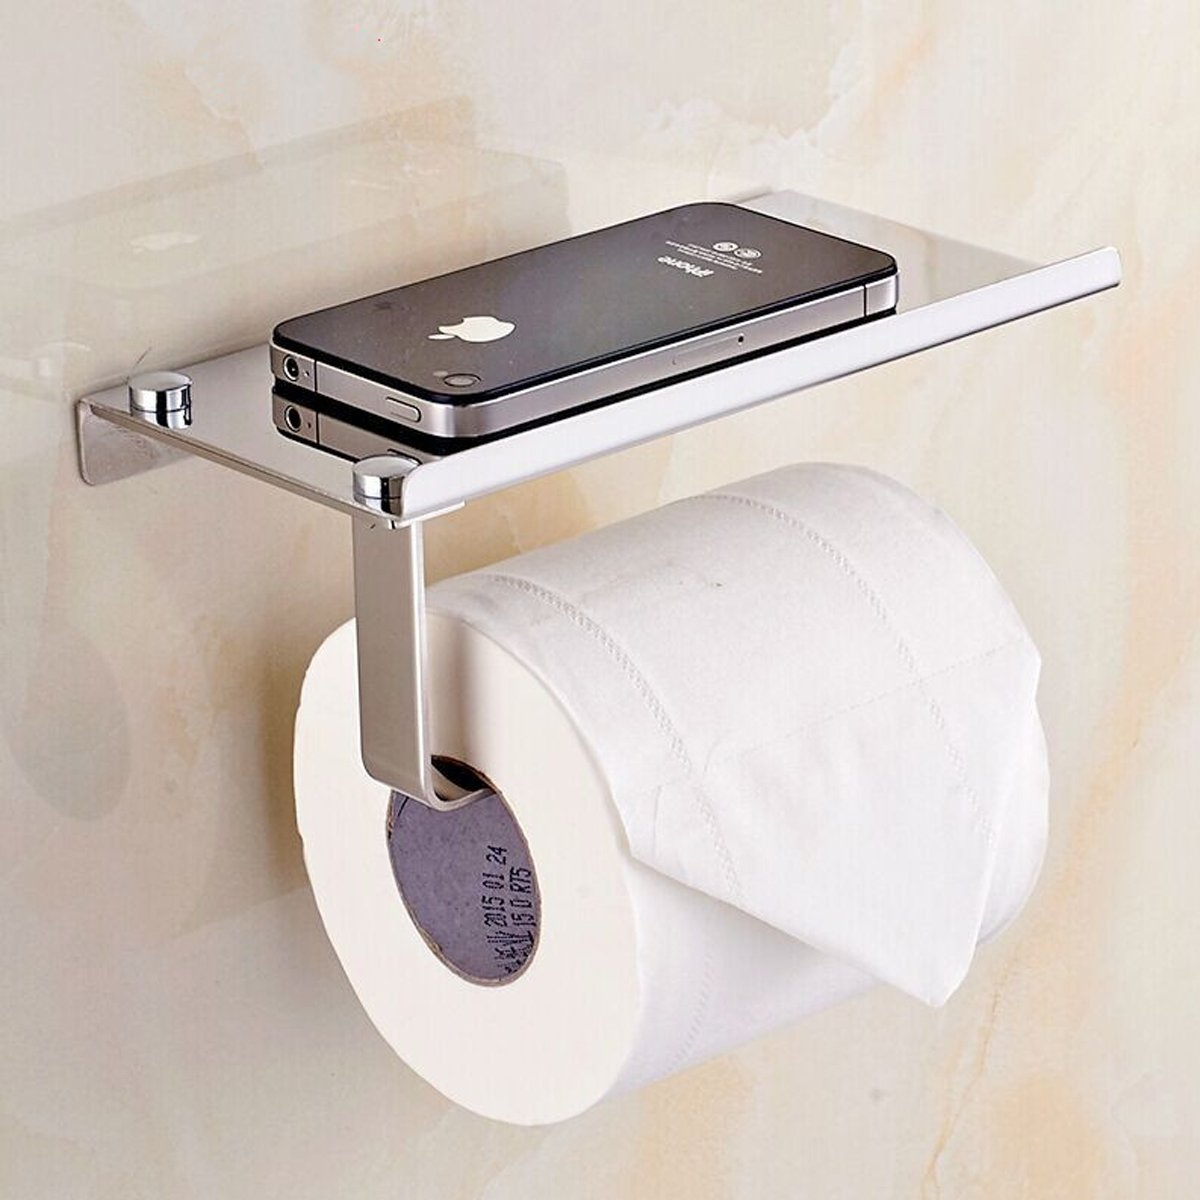 amazoncom bosszi wall mount toilet paper holder sus304 stainless steel bathroom tissue holder with mobile phone storage shelf brushed aluminum home